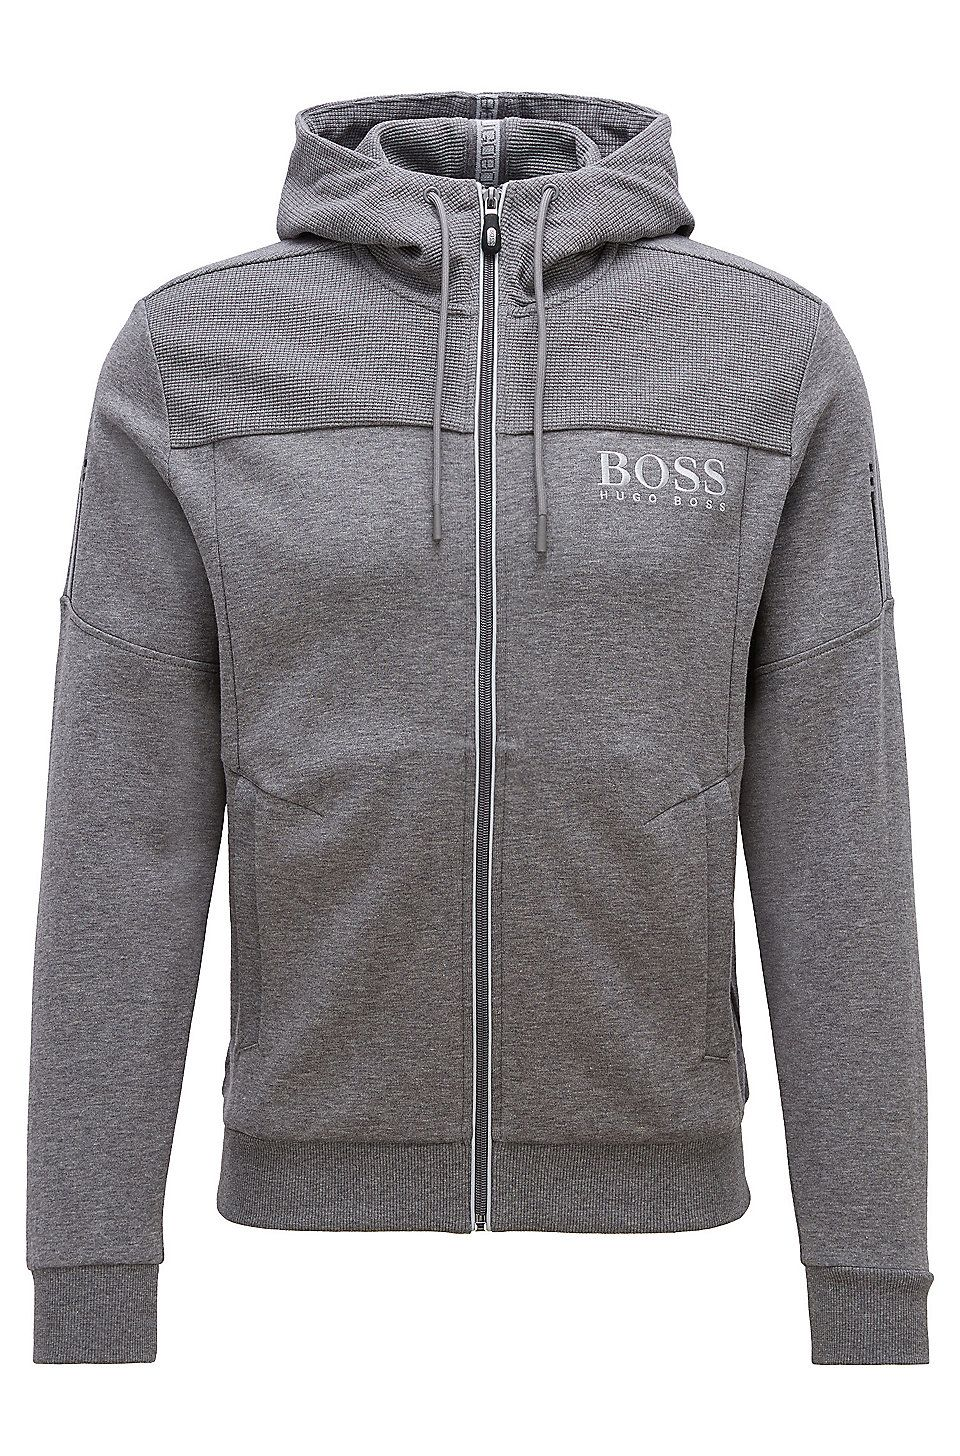 504718257 HUGO BOSS Hooded sweatshirt with contrast zip and logo detail - Grey  Sweaters and Cardigans from BOSS for Men in the official HUGO BOSS Online  Store free ...